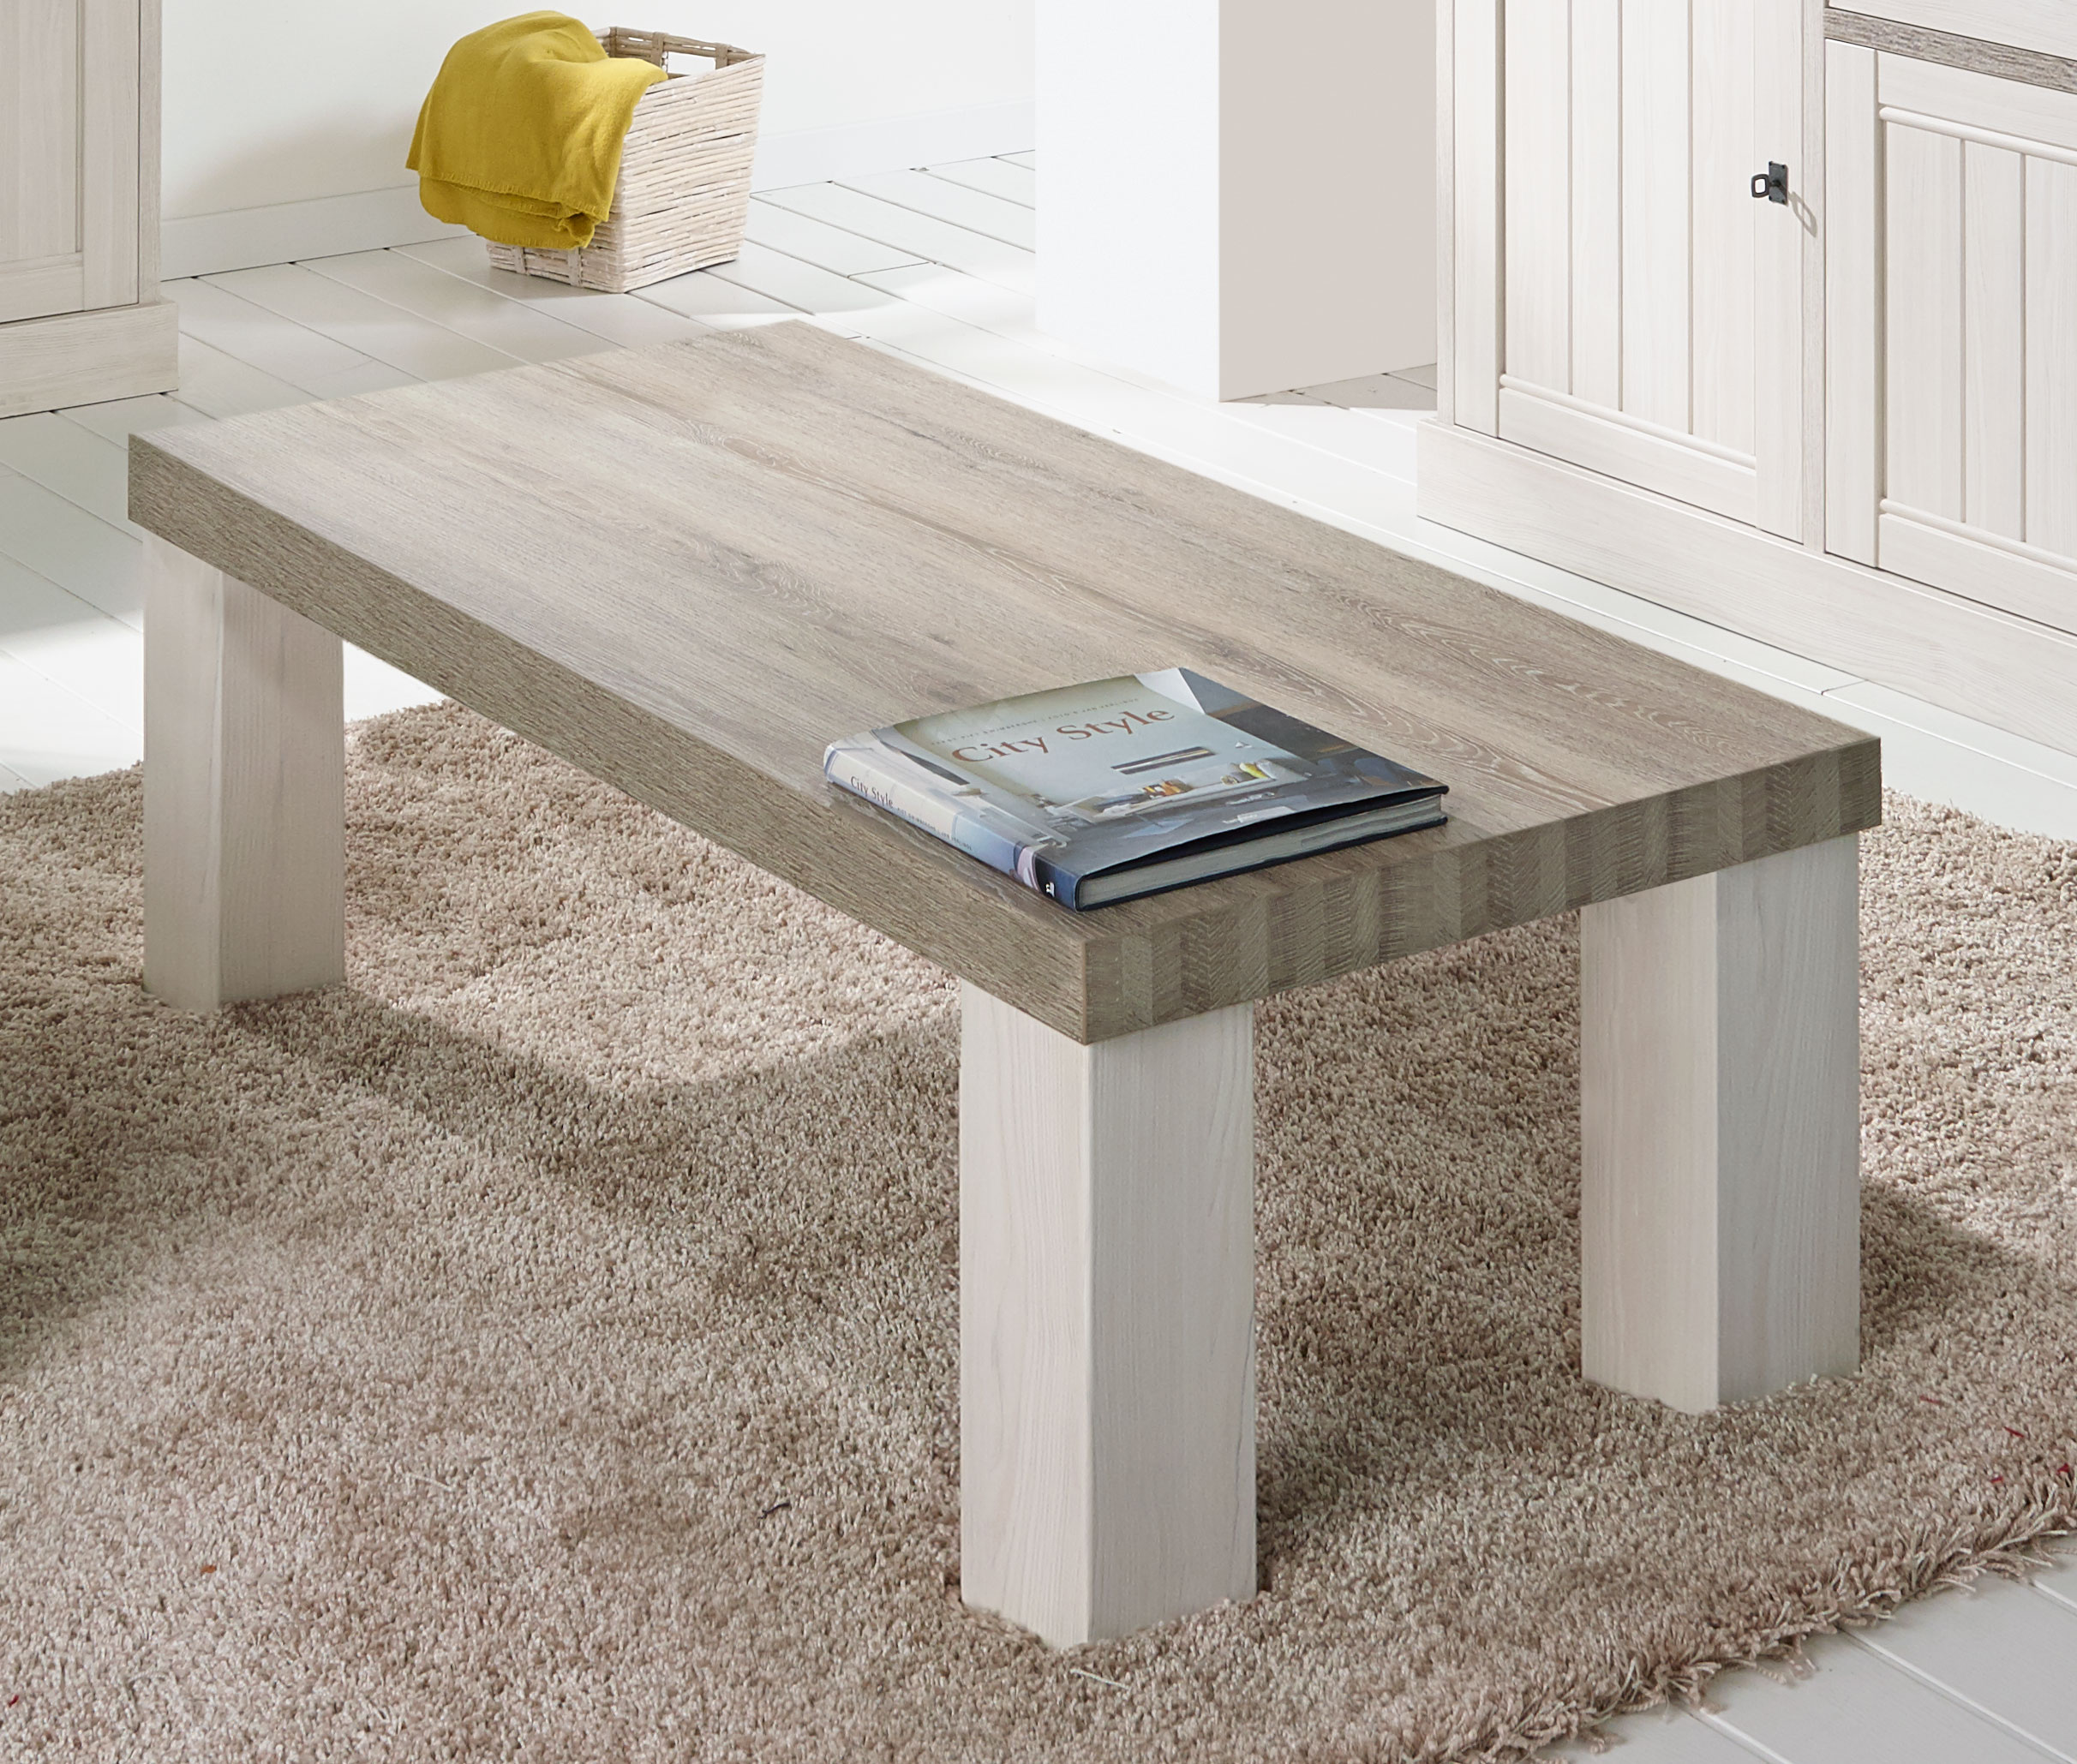 Table basse contemporaine rectangulaire coloris chêne beige/mélèze Samos I